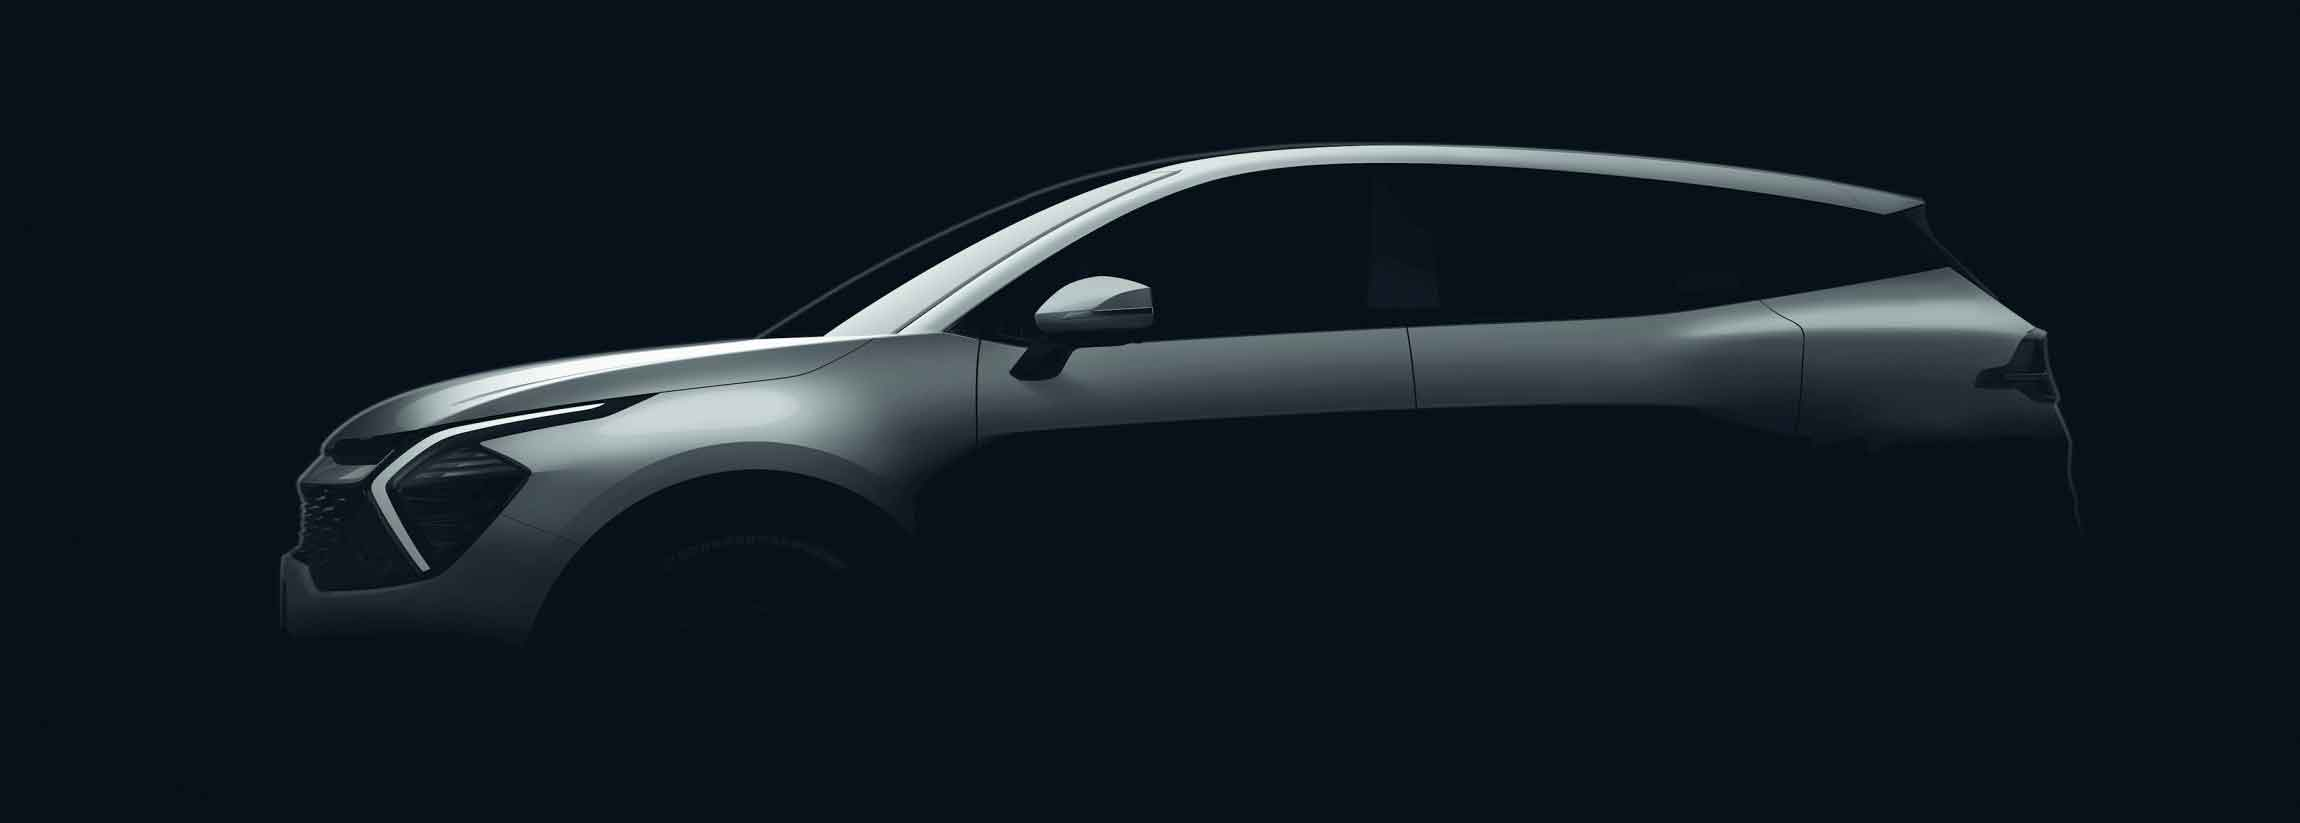 Kia Sportage fifth-generation teaser images revealed